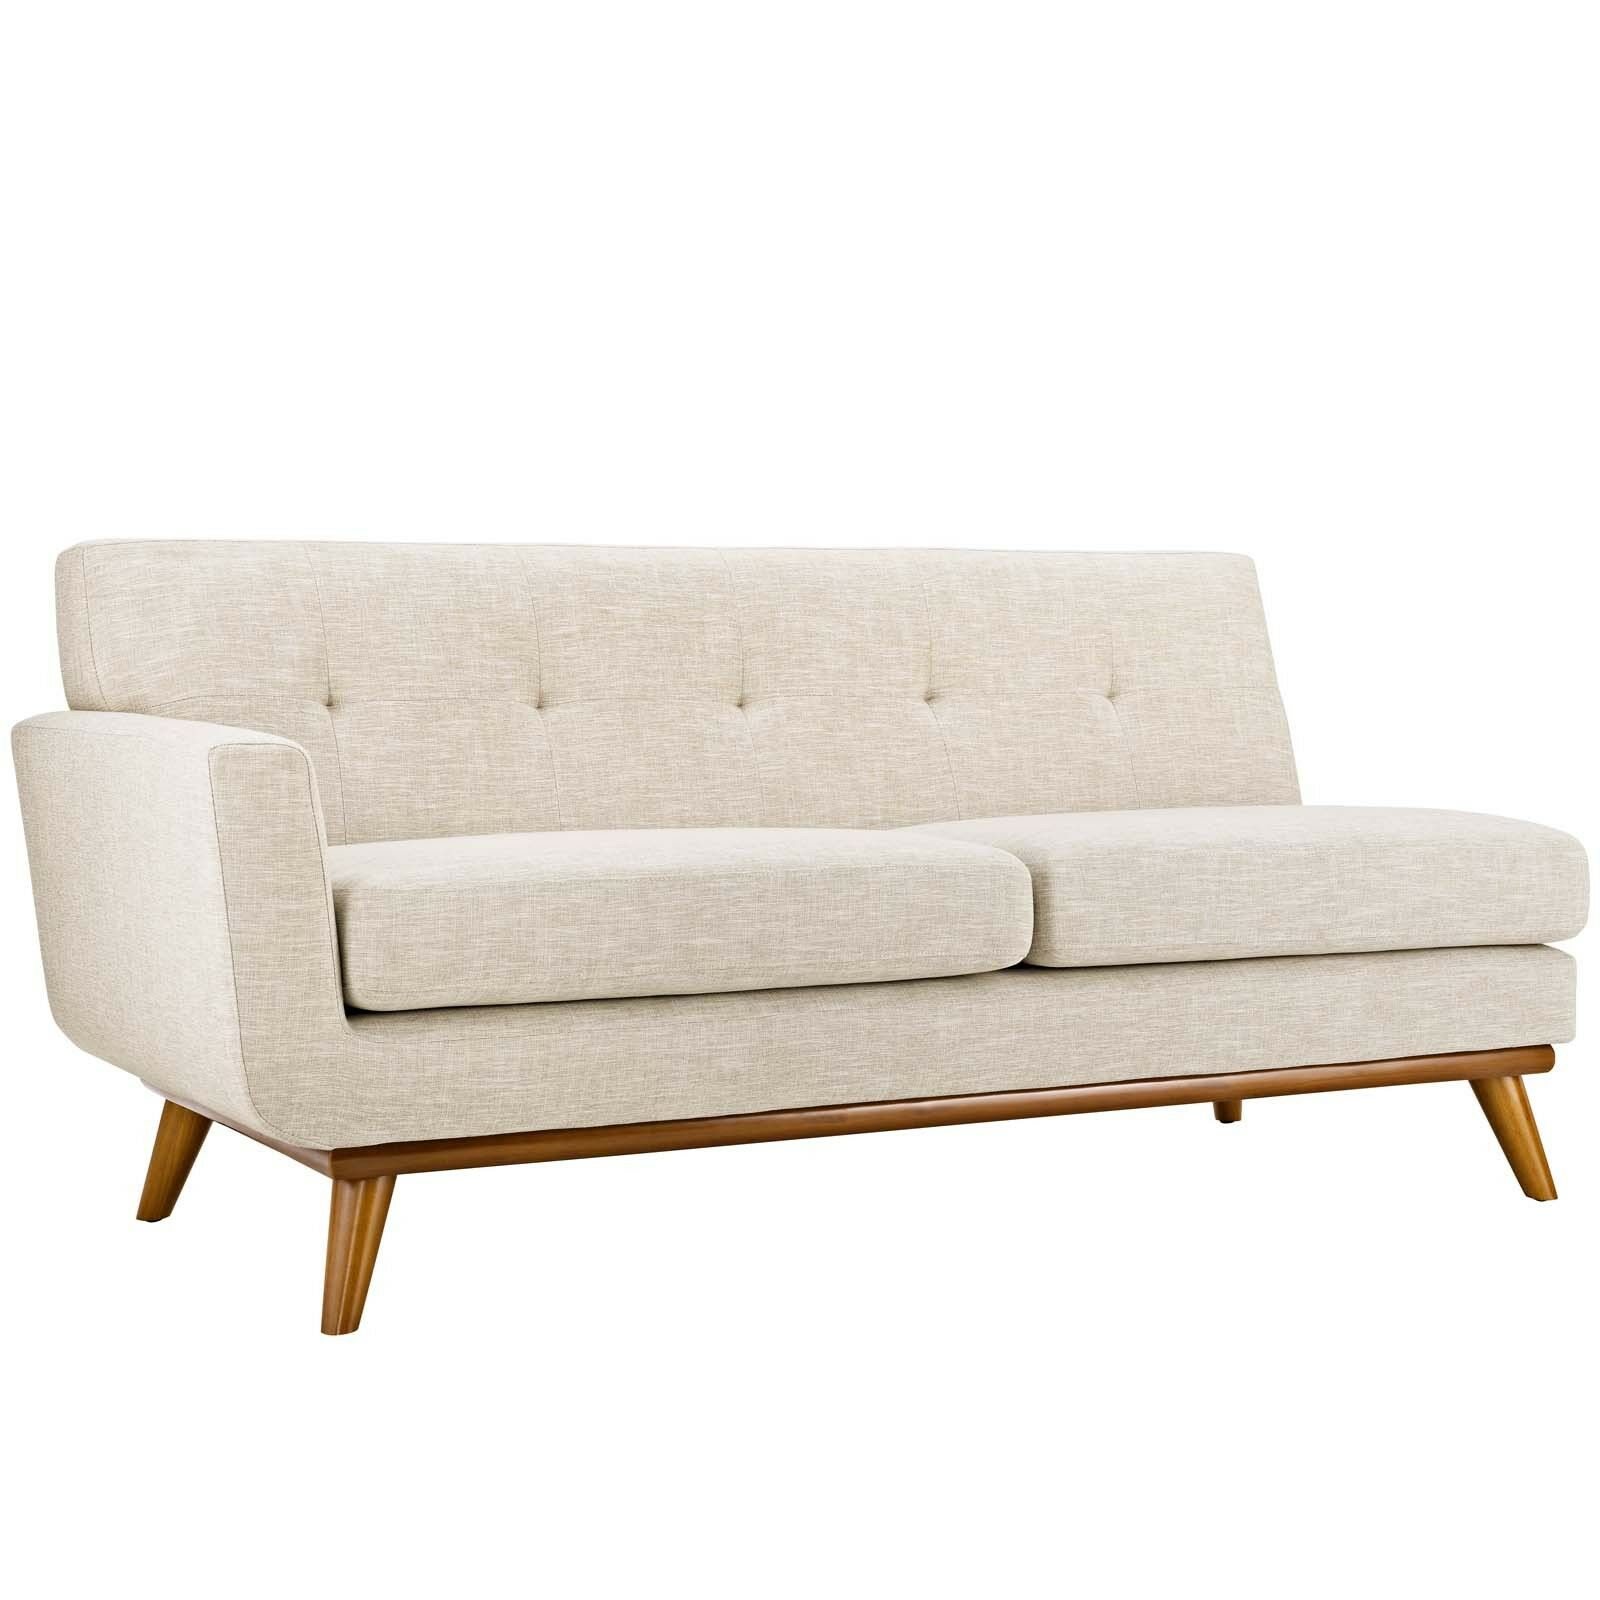 Astonishing Details About Modway Engage Mid Century Modern Upholstered Fabric Right Arm Loveseat In Beige Pabps2019 Chair Design Images Pabps2019Com